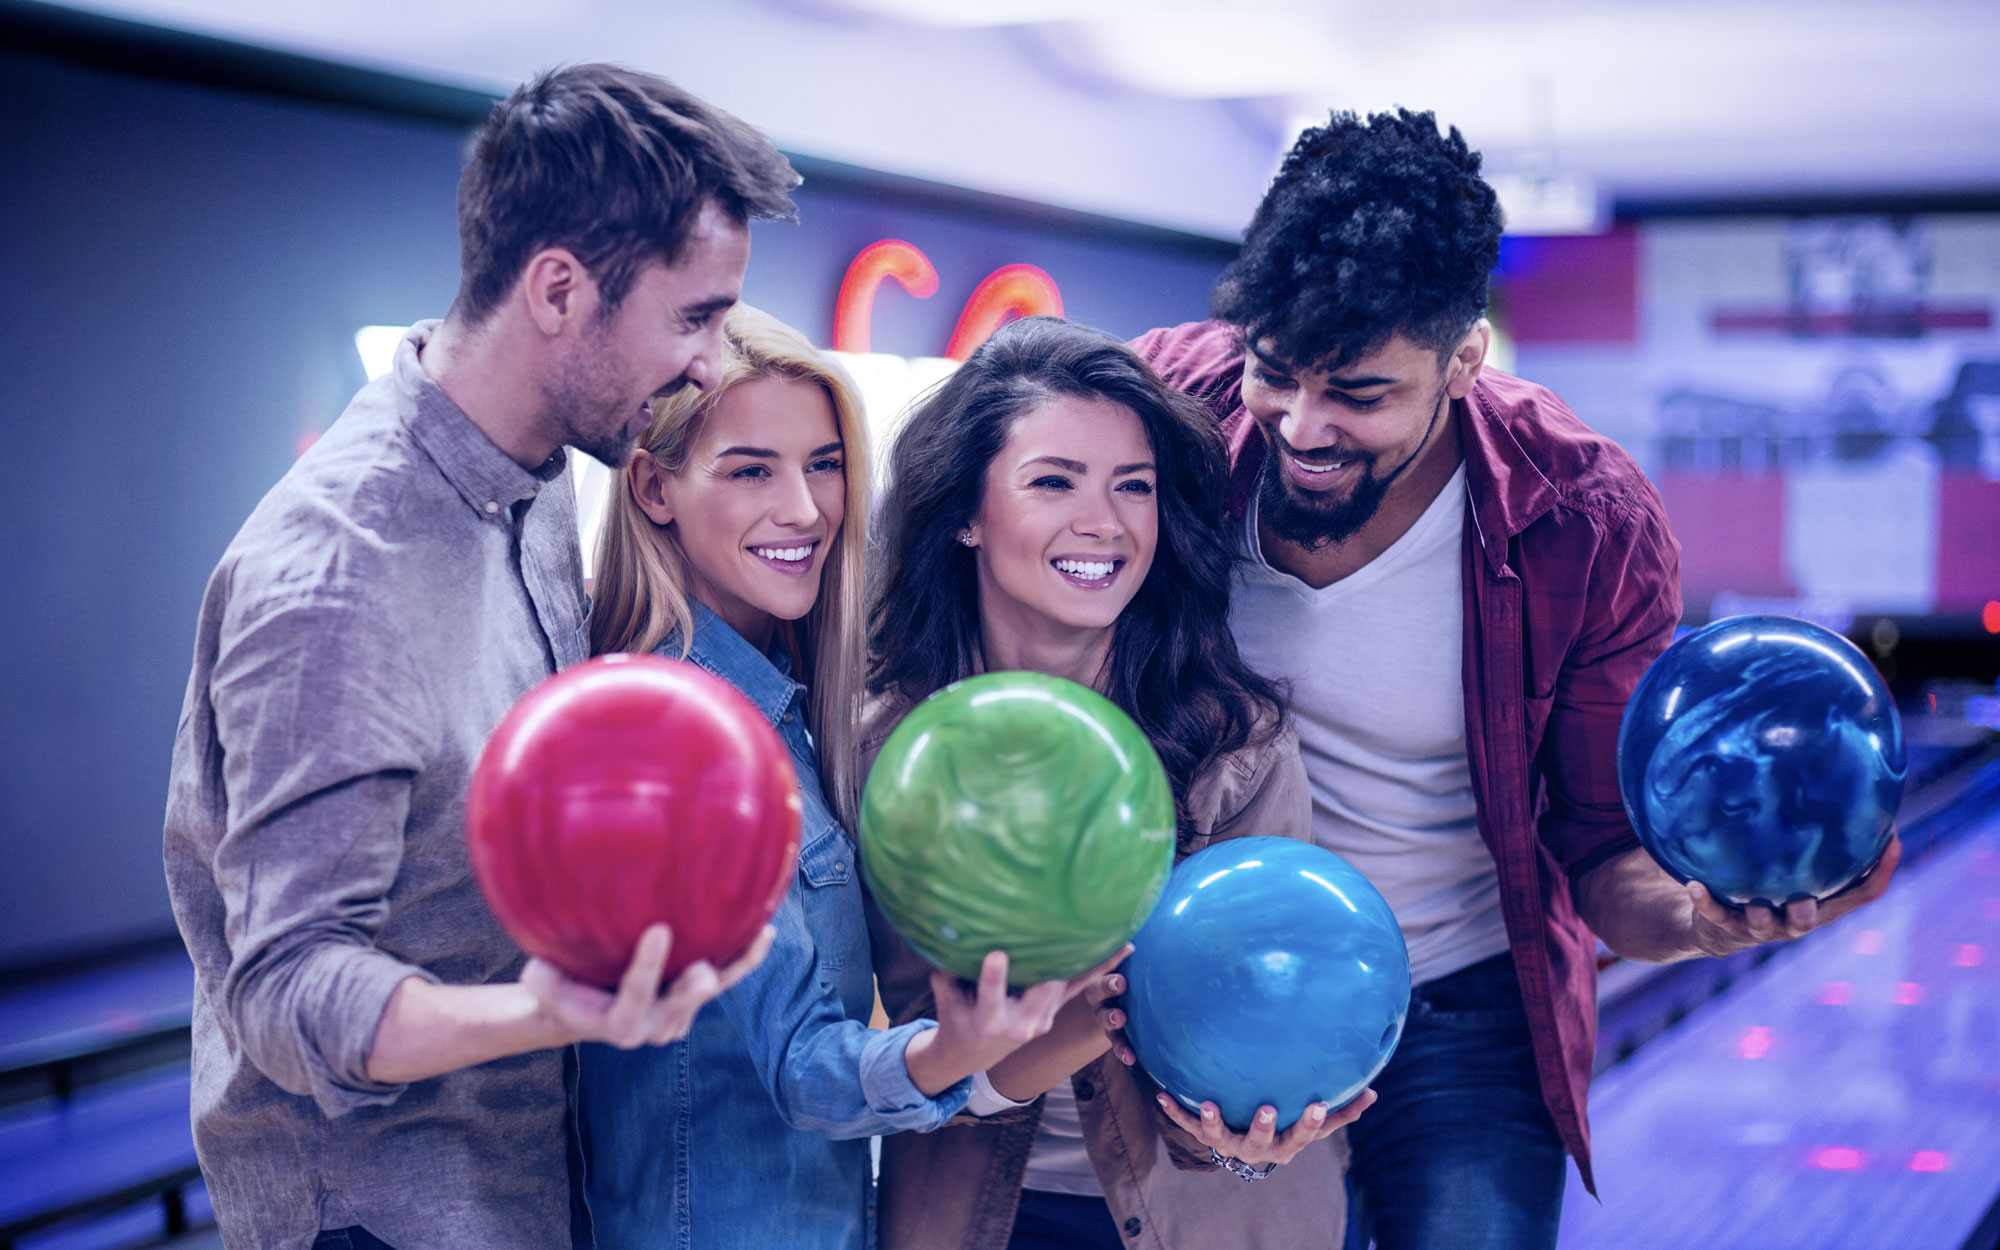 Four smiling friends holding bowling balls